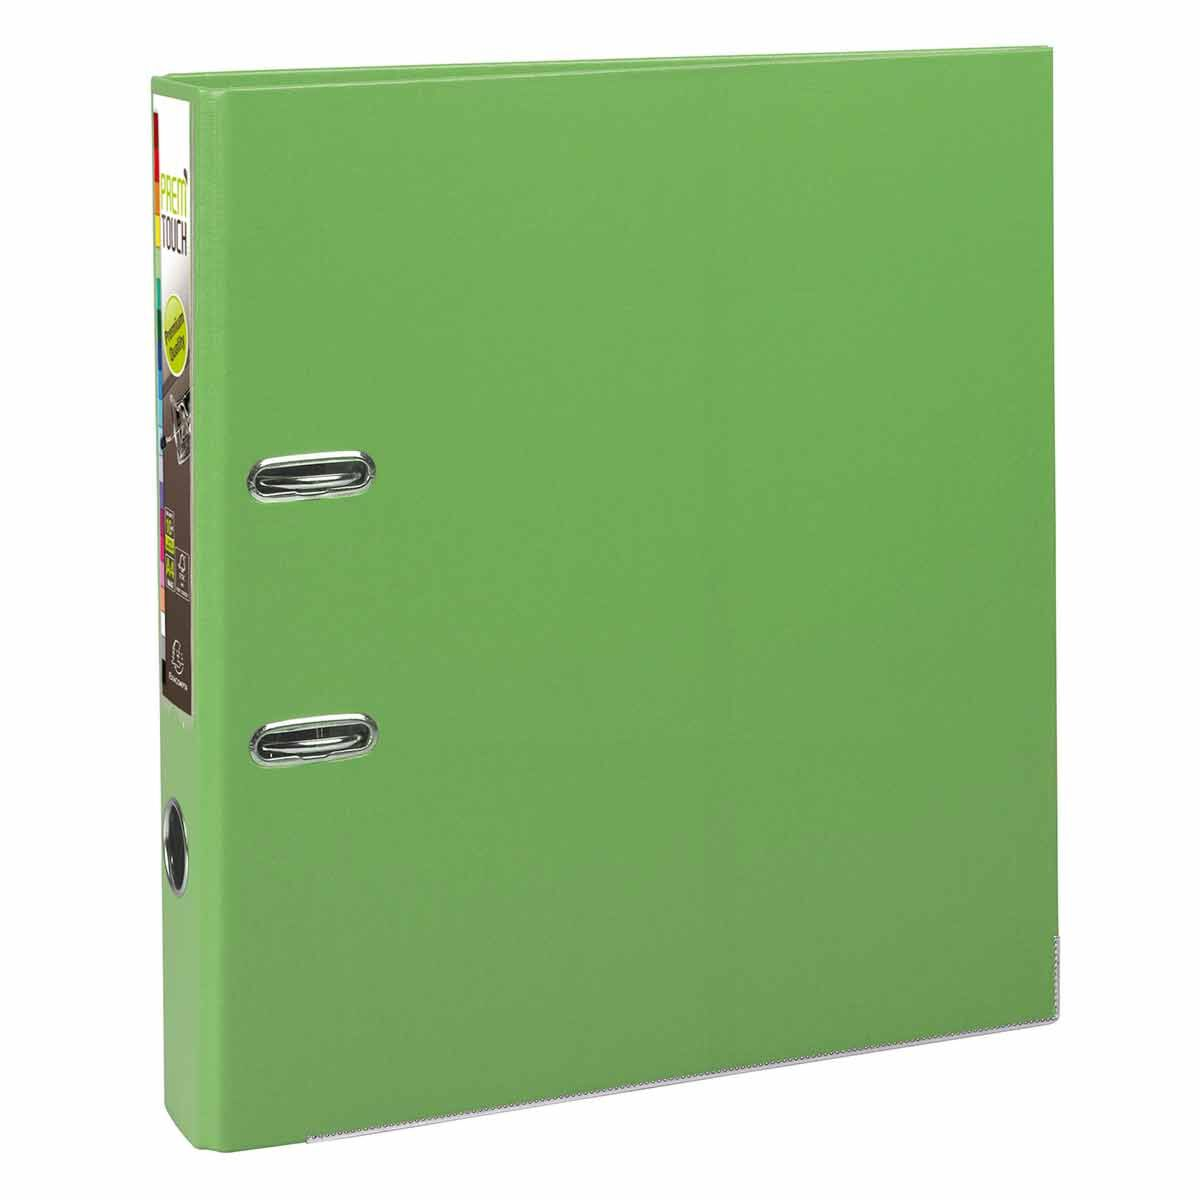 Exacompta PremTouch Lever Arch File A4 Plus PP 50mm Pack of 10 Lime